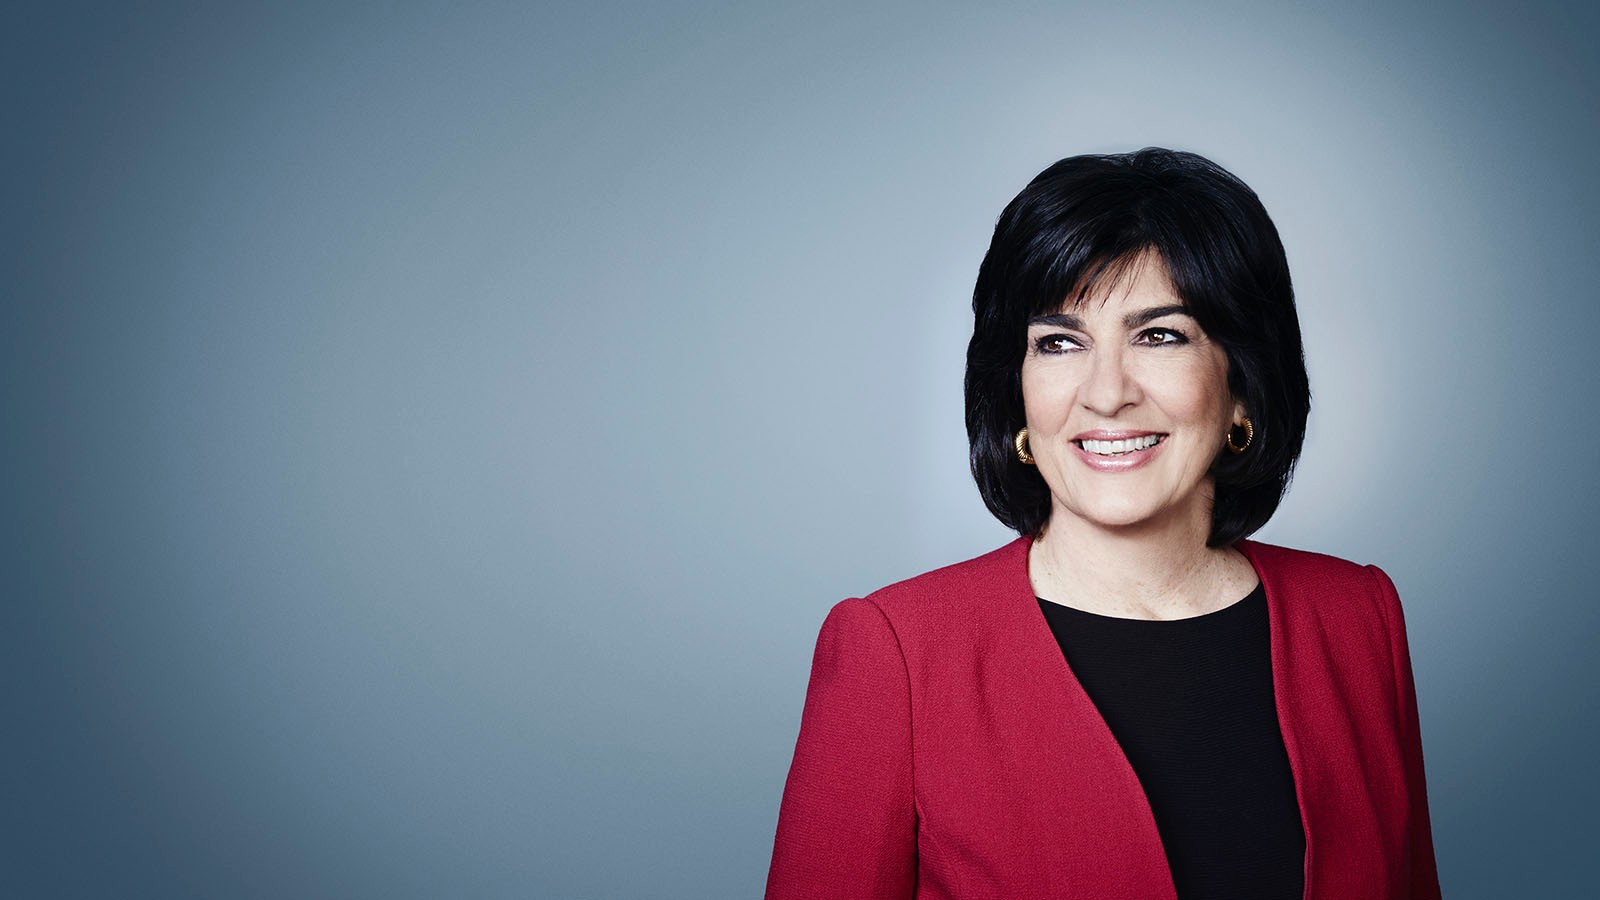 CNN Profiles - Christiane Amanpour - Anchor and Chief ... - photo#28